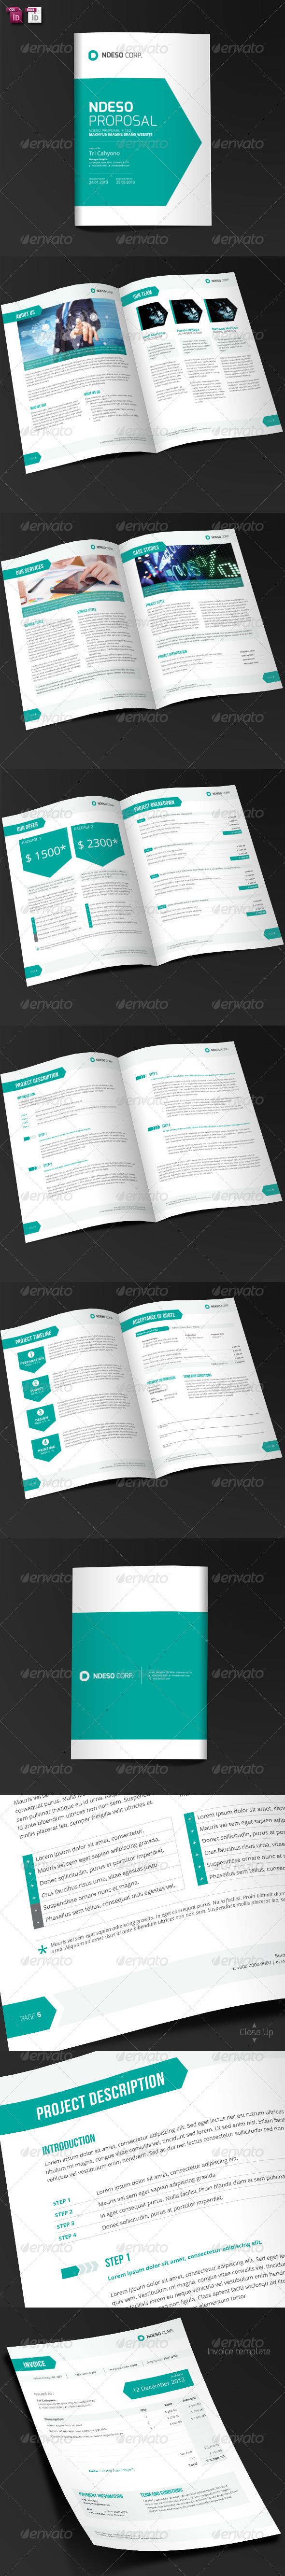 GraphicRiver Ndeso Proposal and Invoice Template 4940656